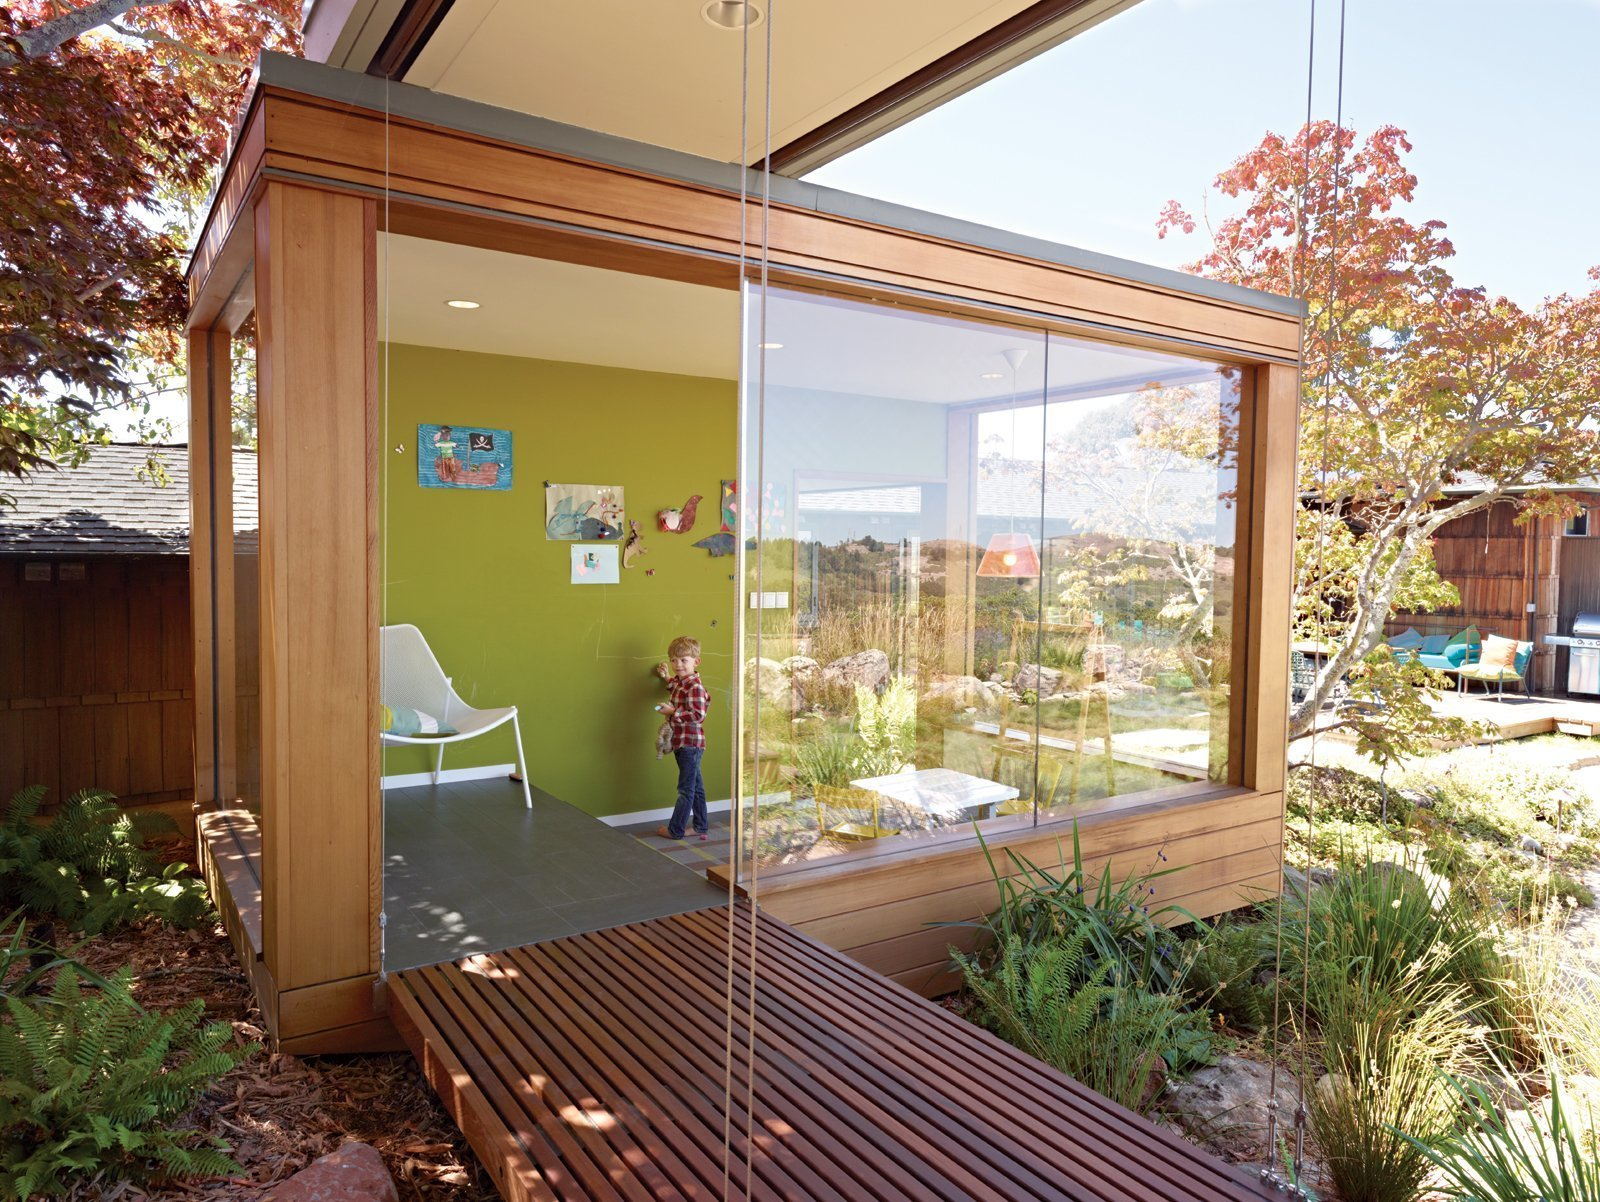 detached children's playroom with glass window walls